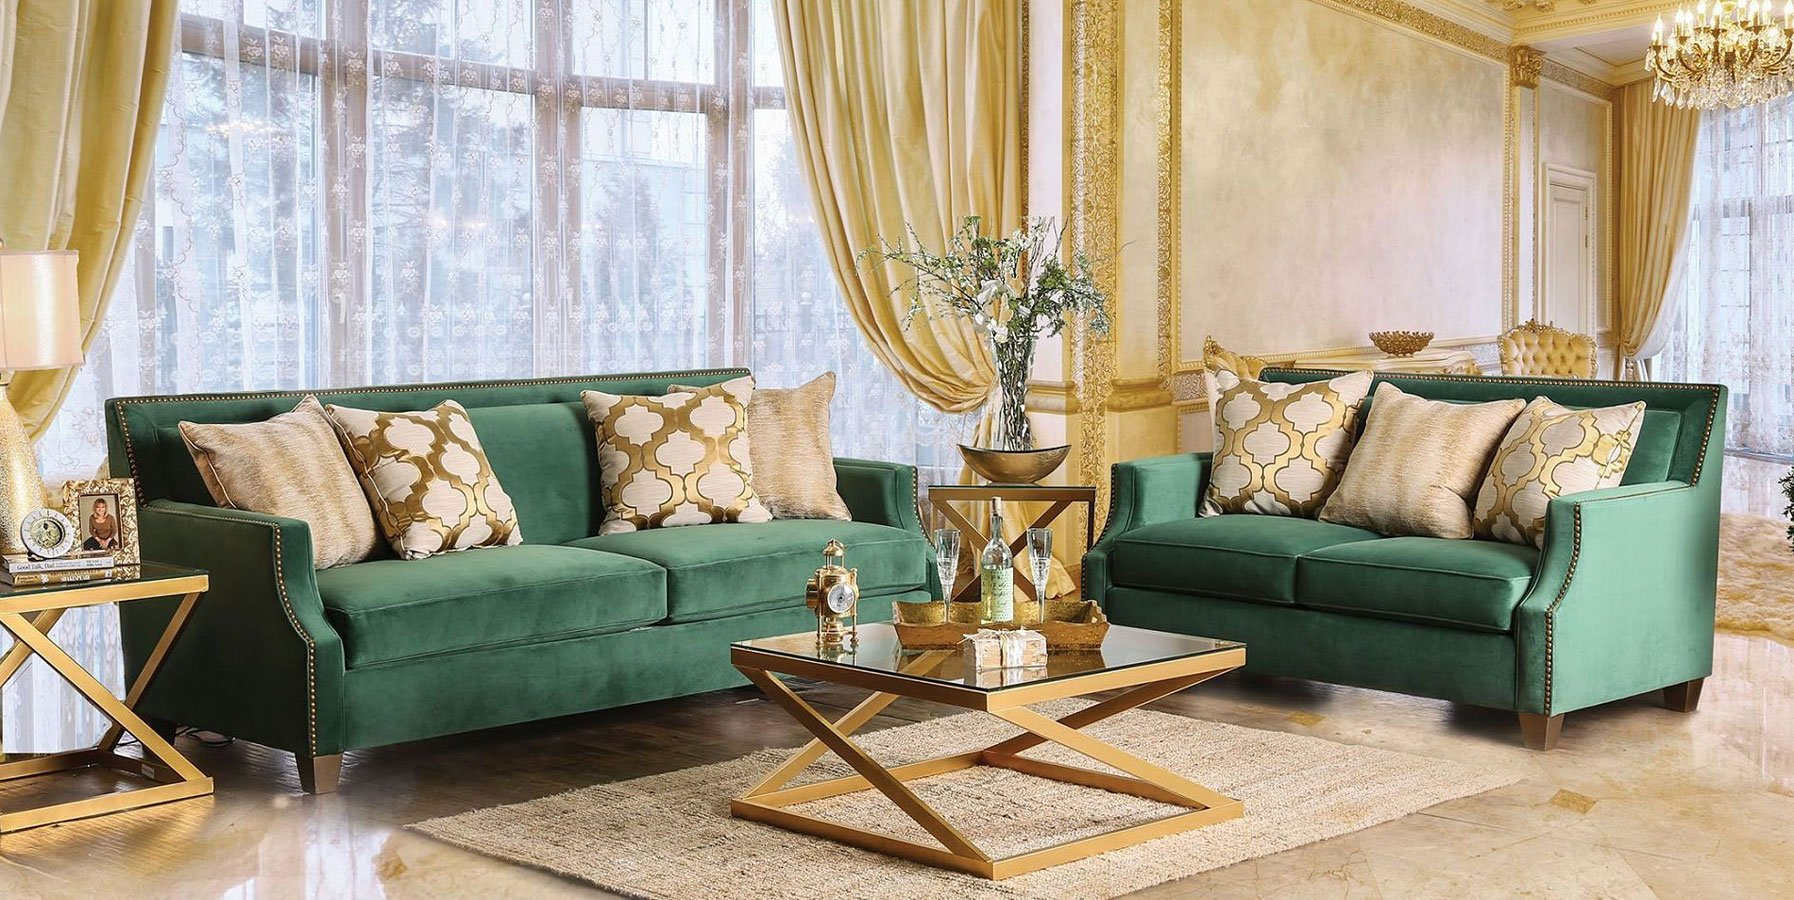 Verdante Living Room Set (Emerald Green)